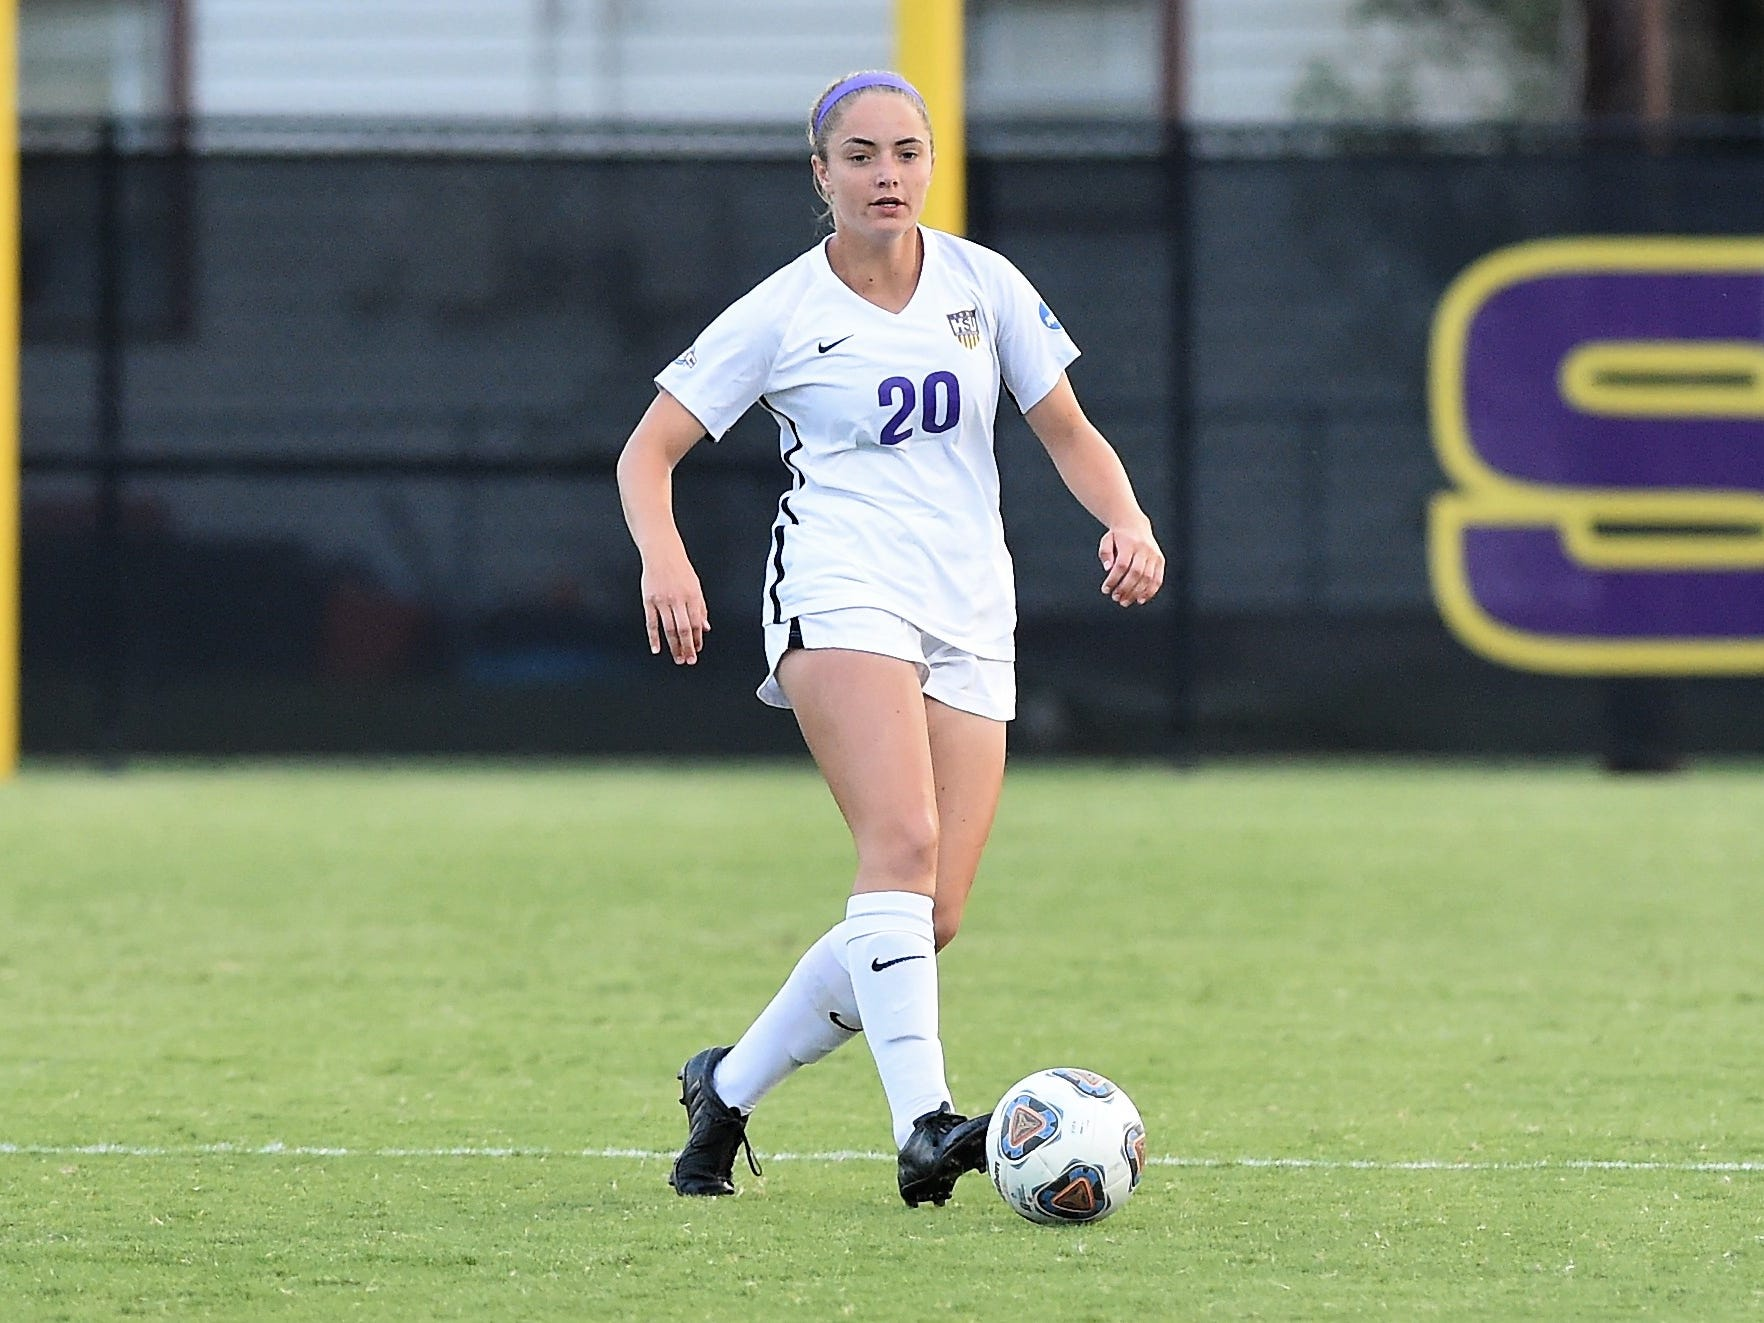 Hardin-Simmons midfielder Morgan McAdams (20) looks to make a pass against Howard Payne at the HSU Soccer Complex on Thursday, Oct. 11, 2018. The Cowgirls won 4-1.